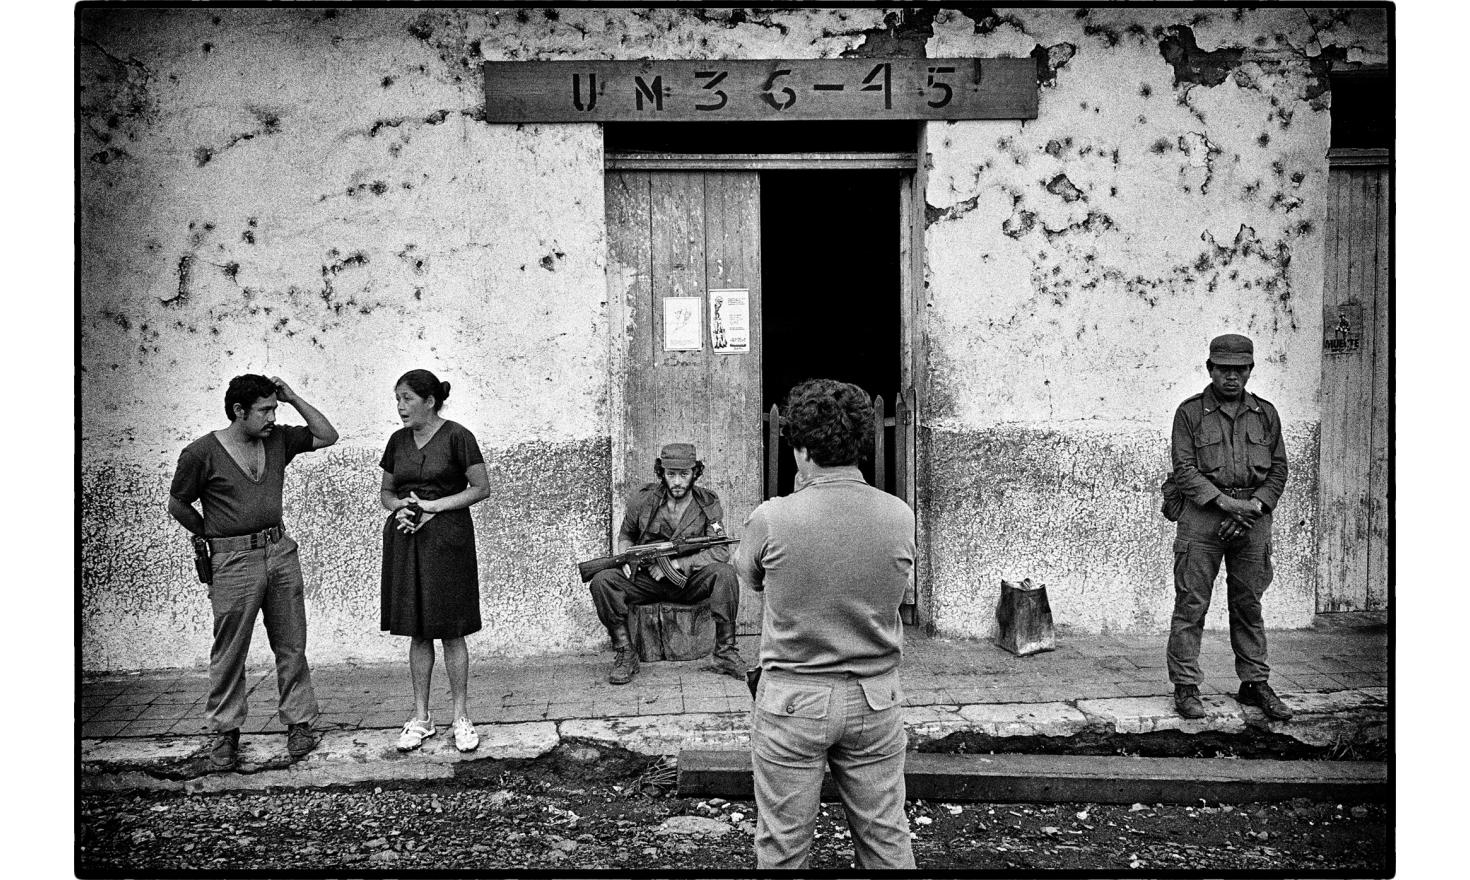 Patroling with the sandinista forces. Northern Nicaragua.Mai 1986.